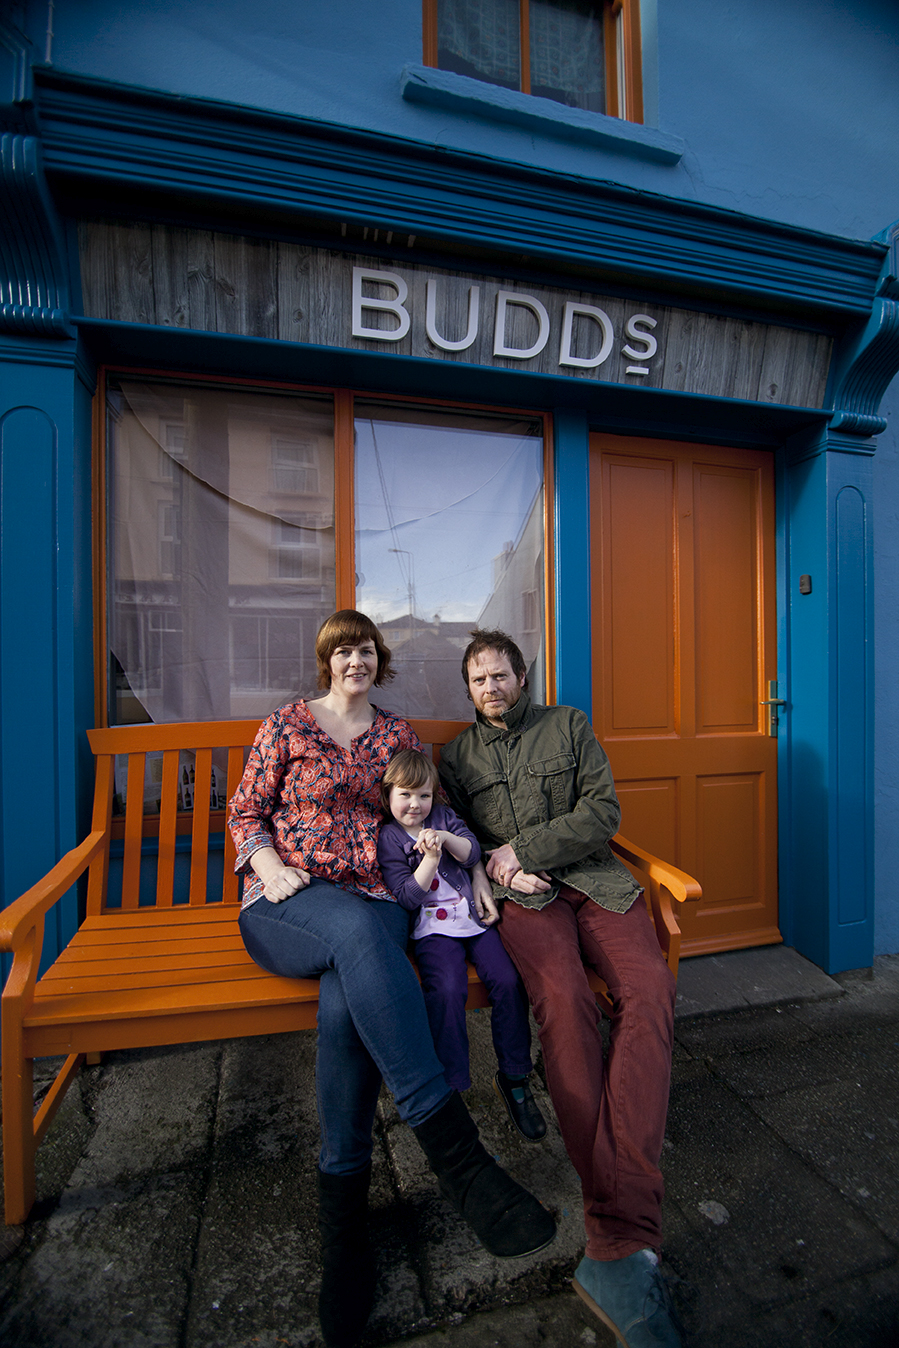 the Budd family outside their restaurant in Ballydehob along the Wild Atlantic Way